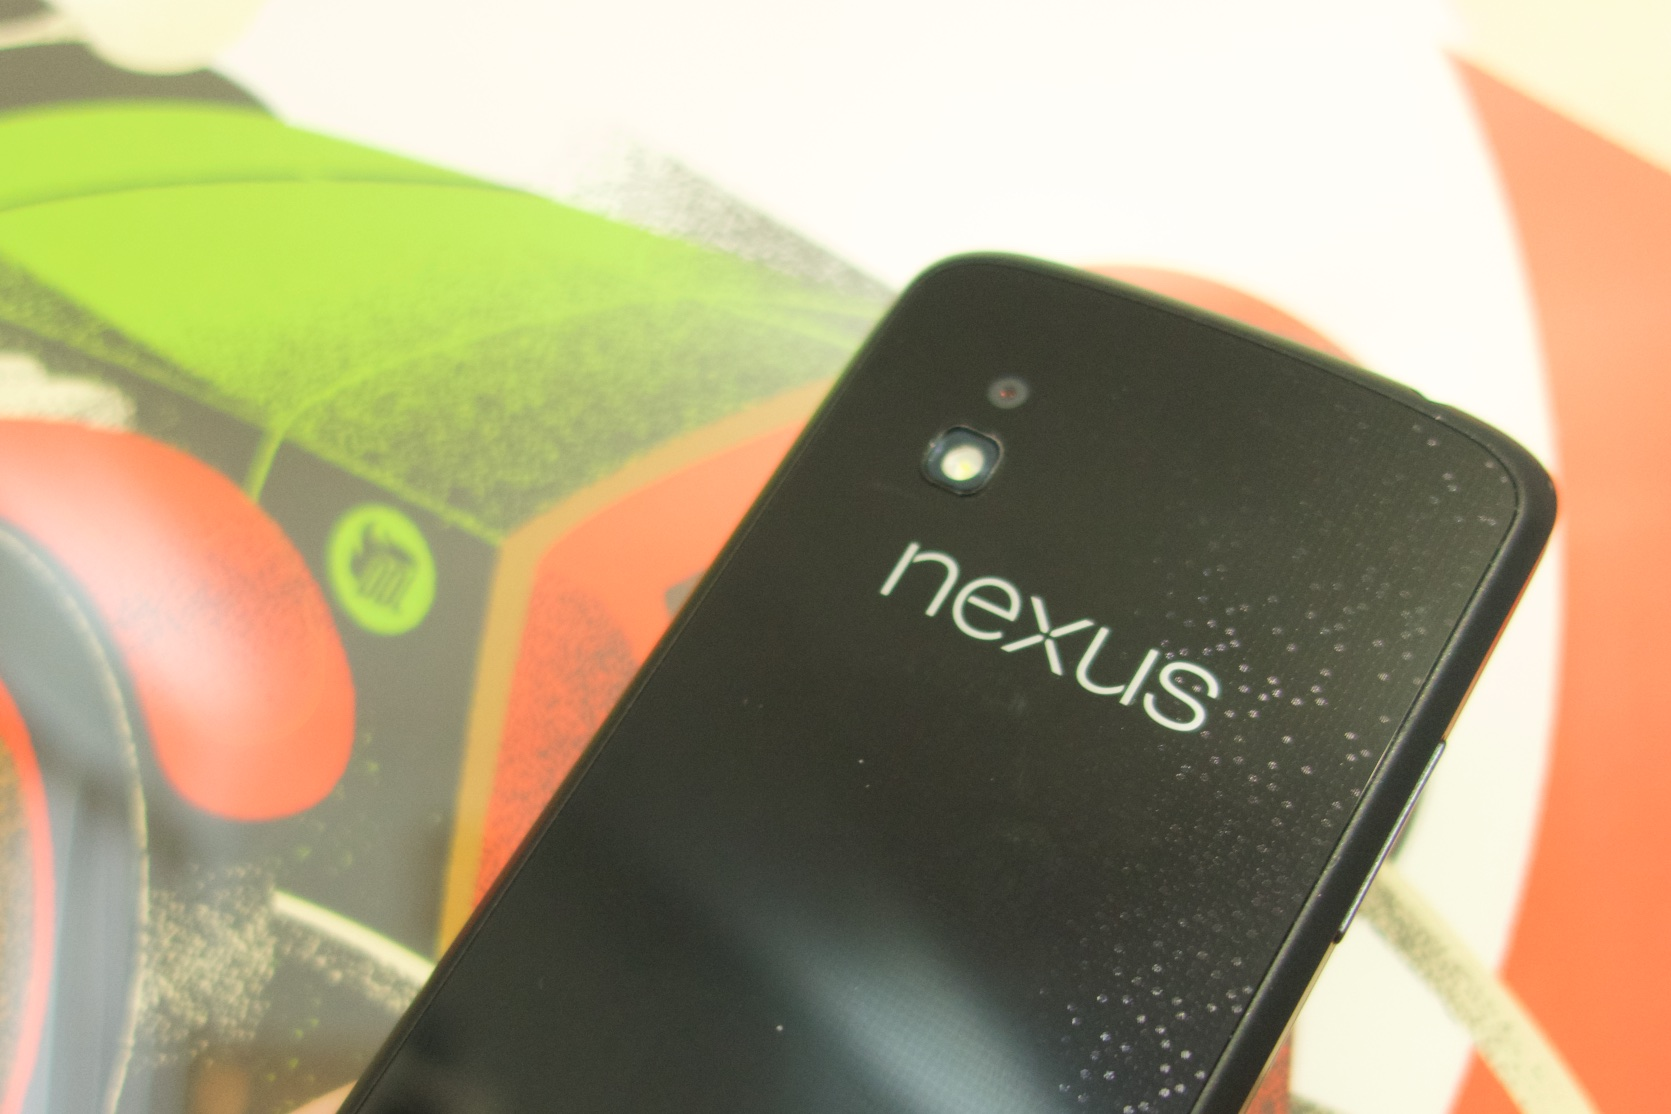 Android 5 0 1 lollipop and 5 0 2 update for nexus devices android - We Ve Outlined A Number Of Steps To Take Ahead Of The Download Process And We Ve Also Put Together Some Useful Android 5 1 1 Lollipop Release Date Tips That